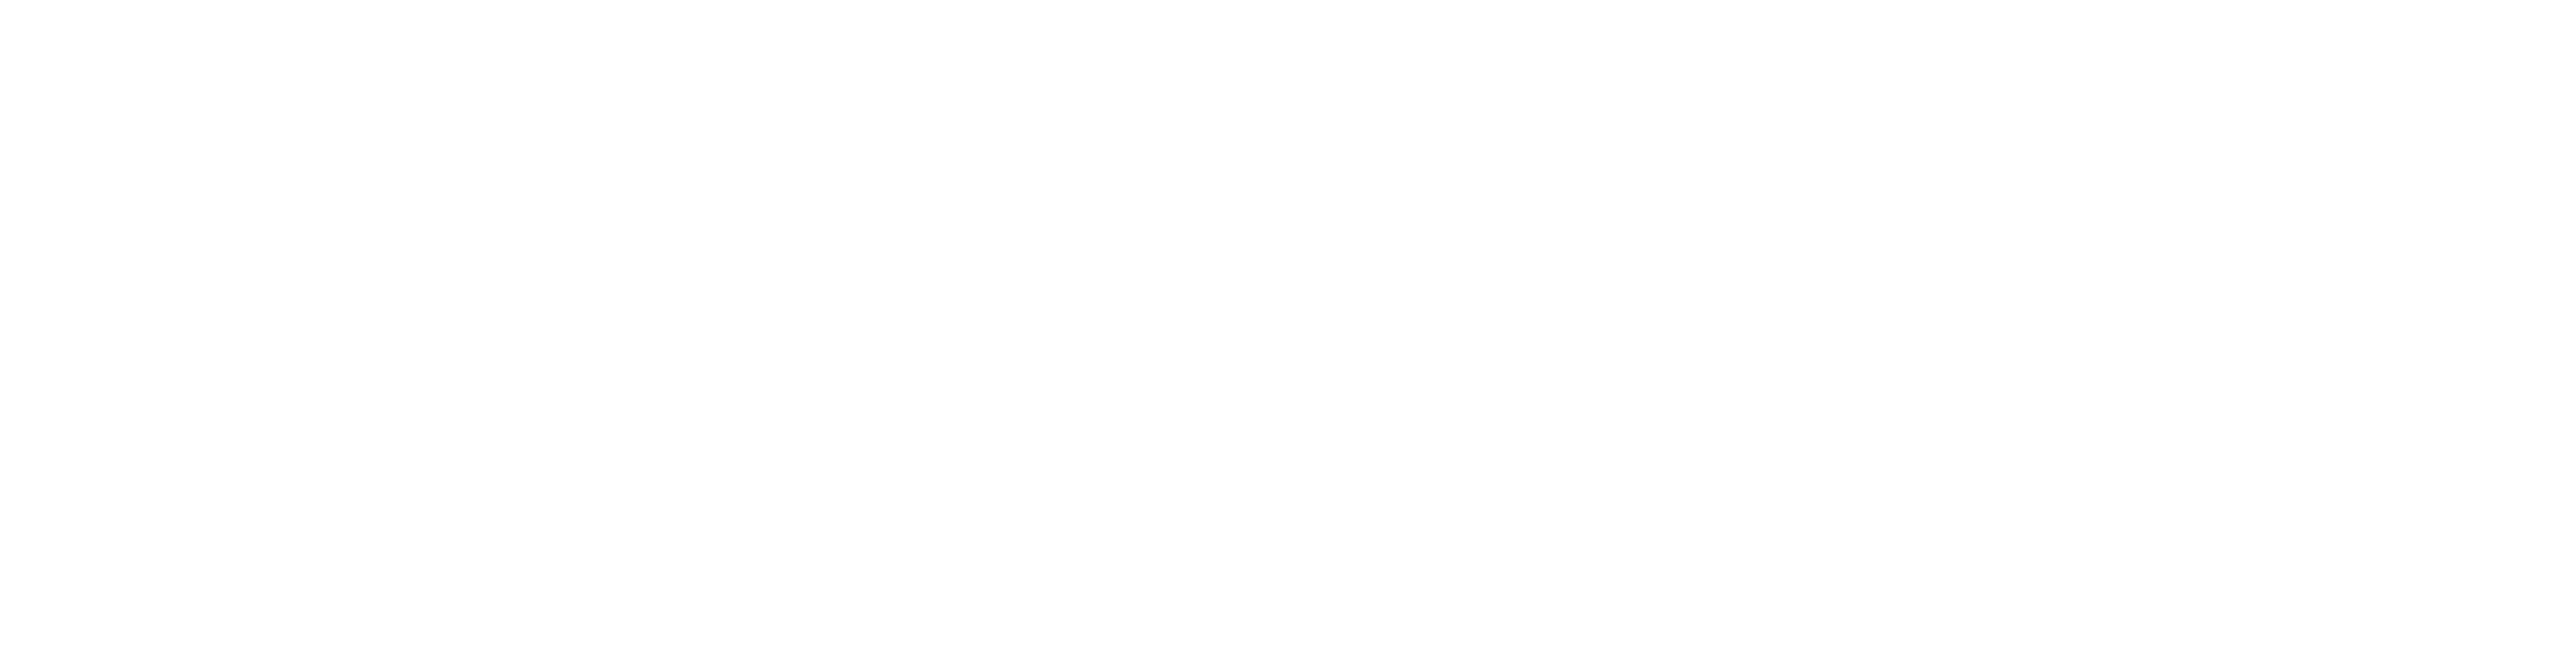 Melbourne PR & Marketing